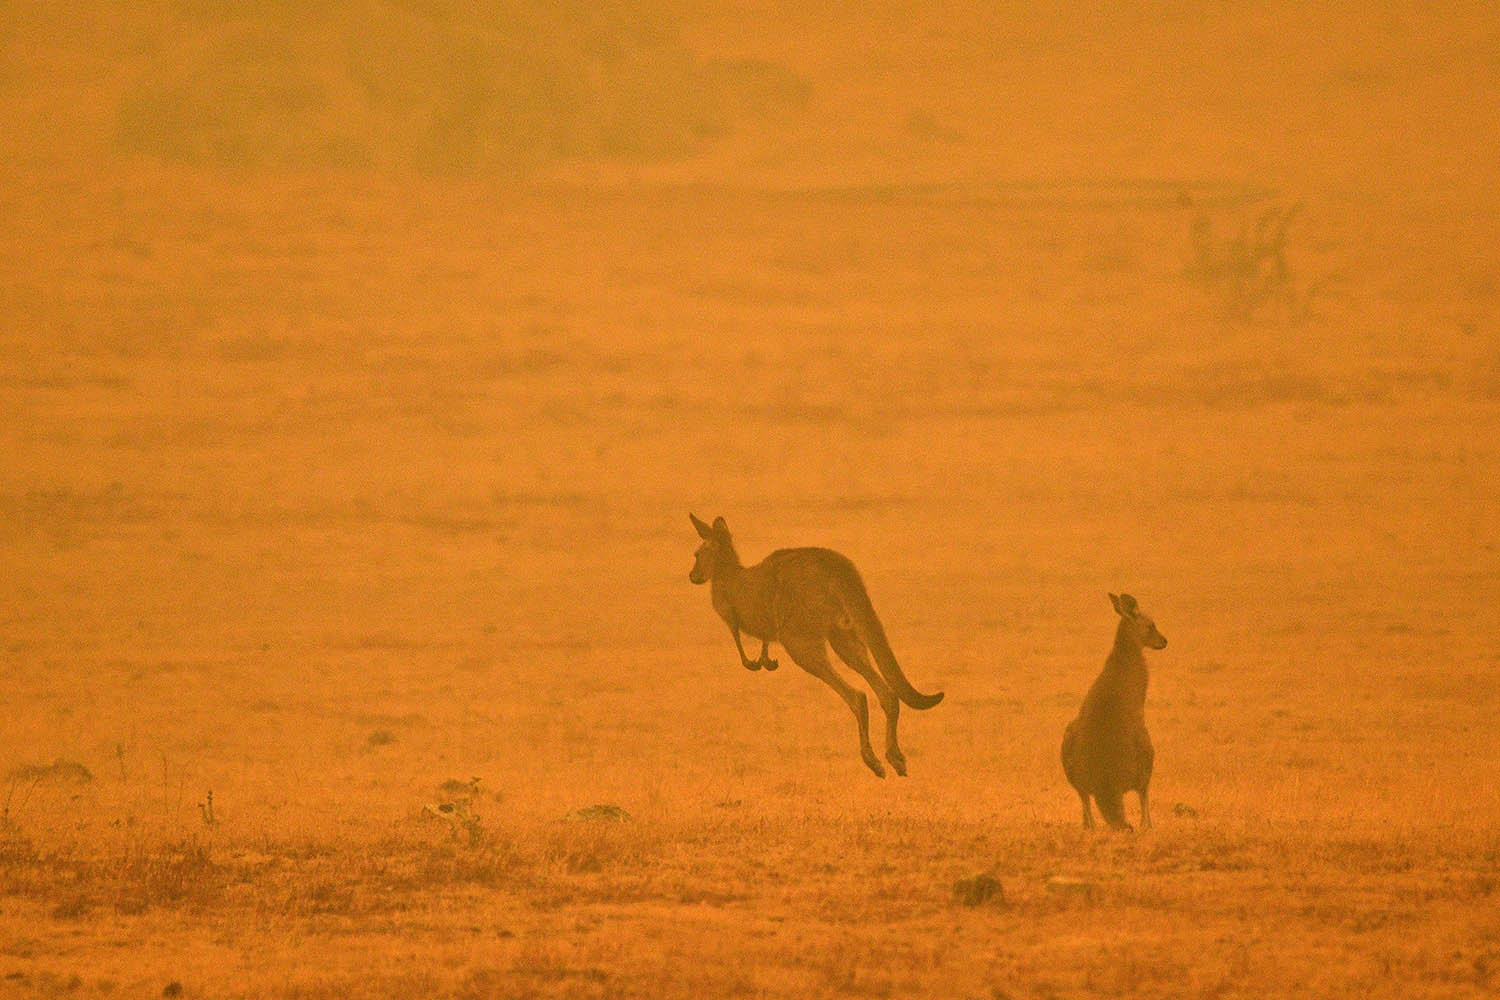 Kangaroos hop through a field filled with smoke from a bushfire in Snowy Valley on the outskirts of Cooma, Australia, on Jan. 4. SAEED KHAN/AFP via Getty Images